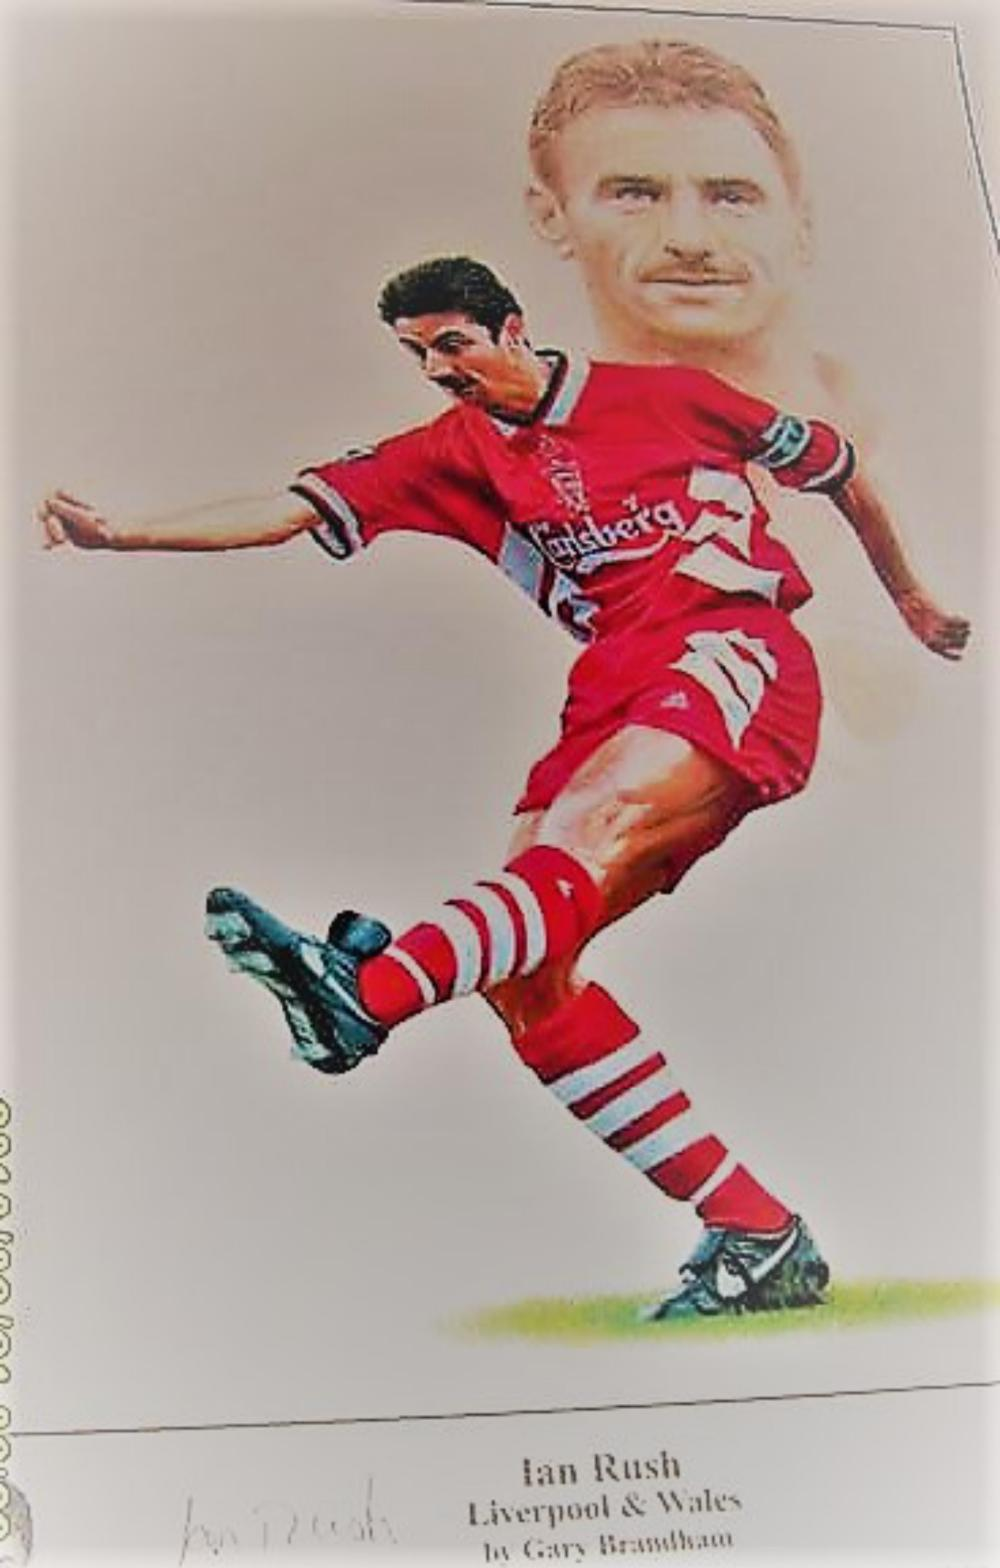 Lot 191: Signed Limited Edition print of Wales and Liverpool Football club Legend Ian Rush - Ian James Rush, MBE (born 20 October 1961) is a retired Welsh professional footballer who also a Goal King for Liverpool.